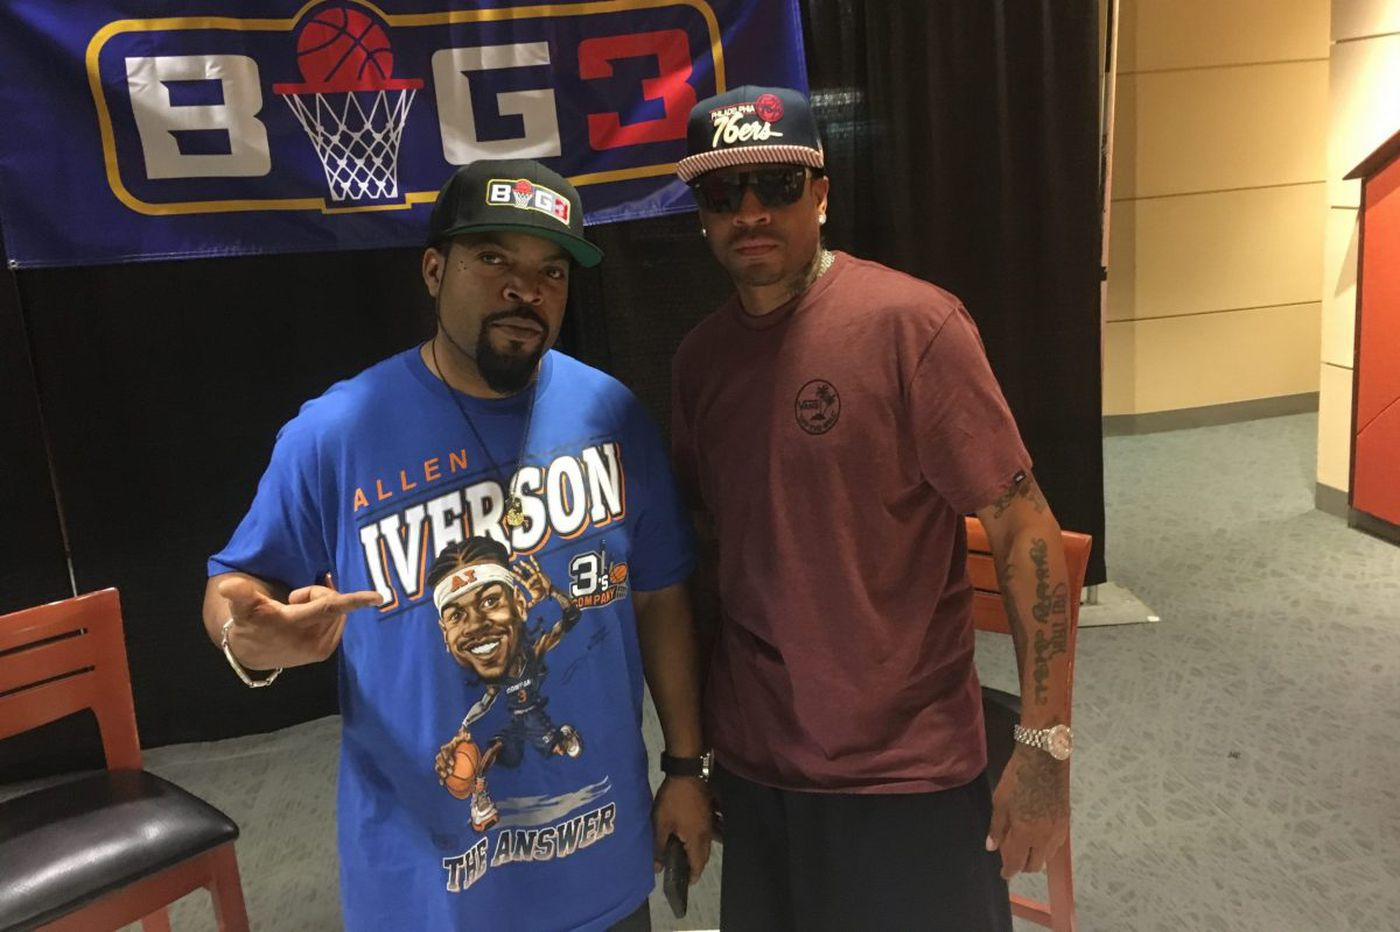 Allen Iverson at Wells Fargo to give 'that flashback'